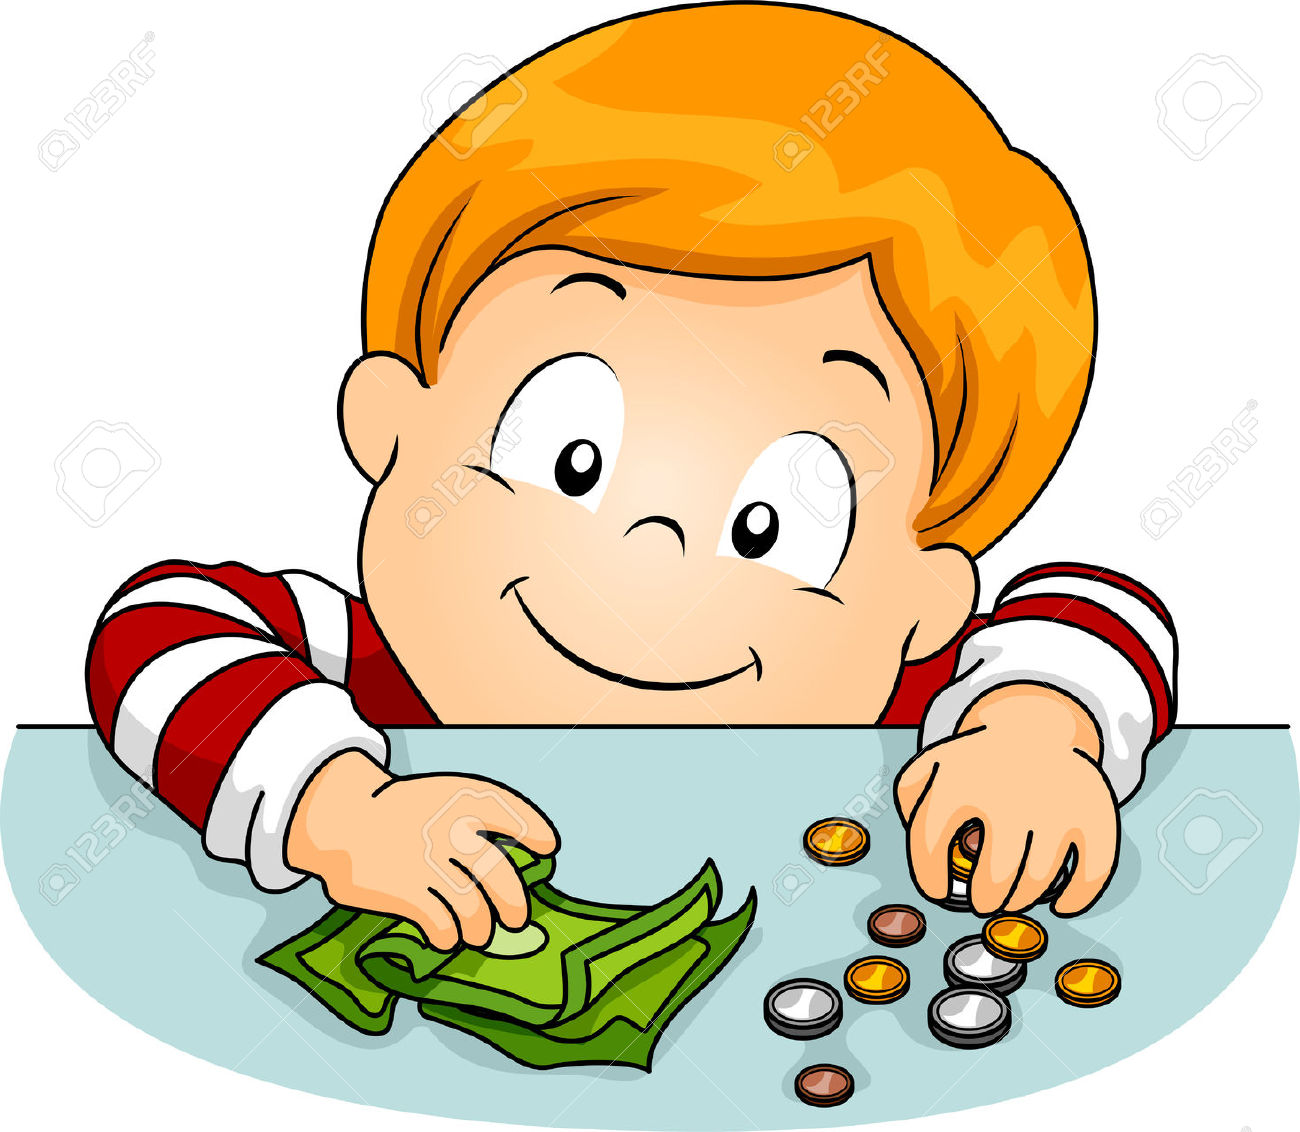 Cash clipart kid.  collection of boy